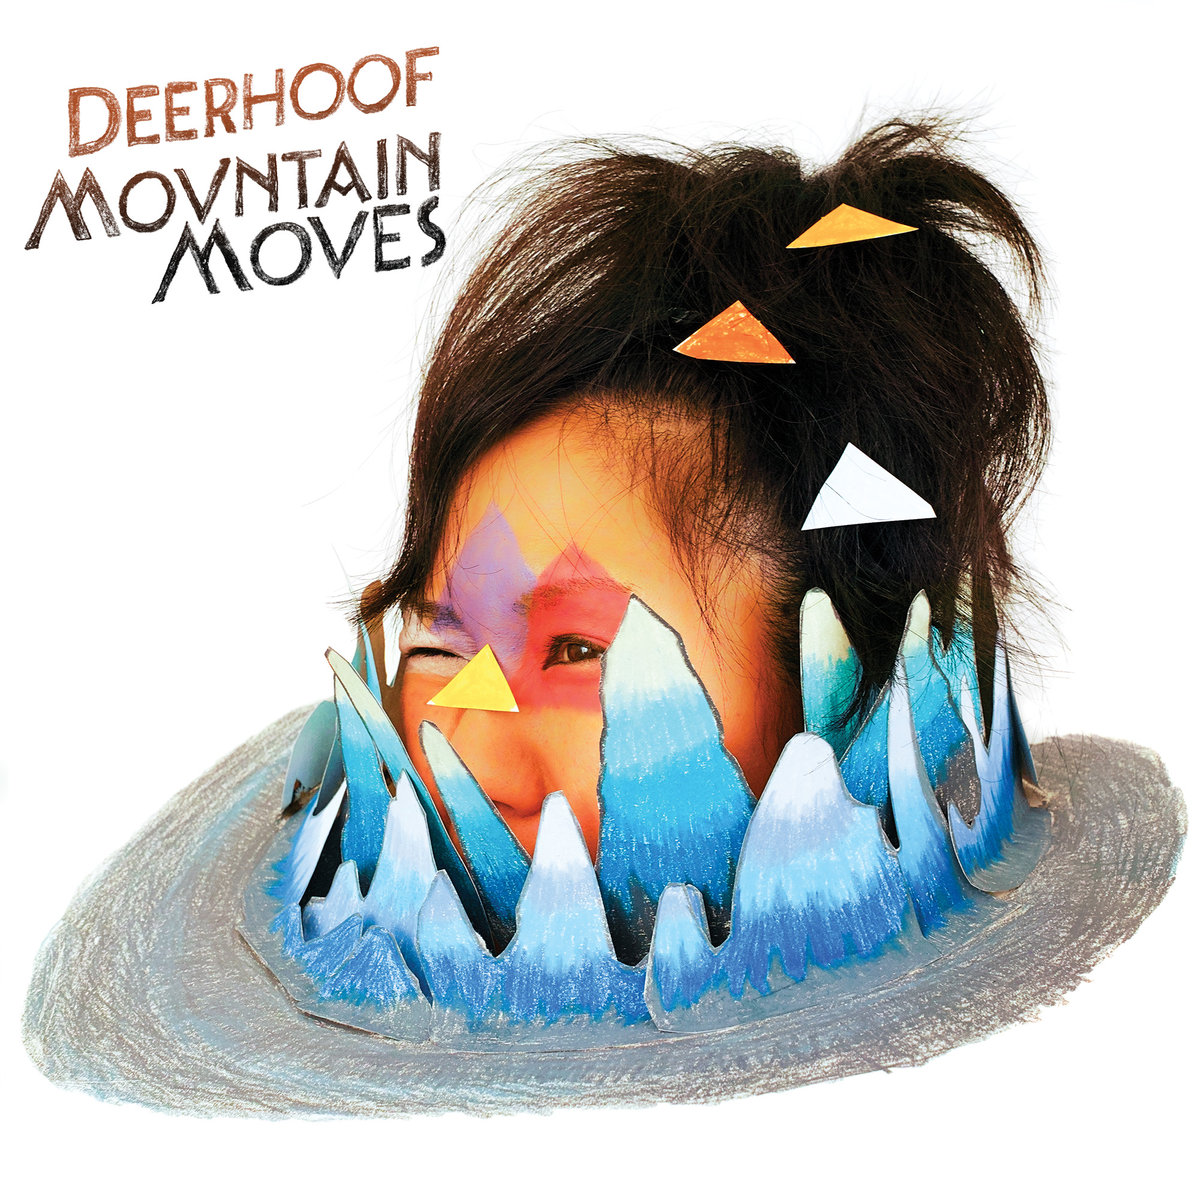 Deerhoof new album Mountain Moves